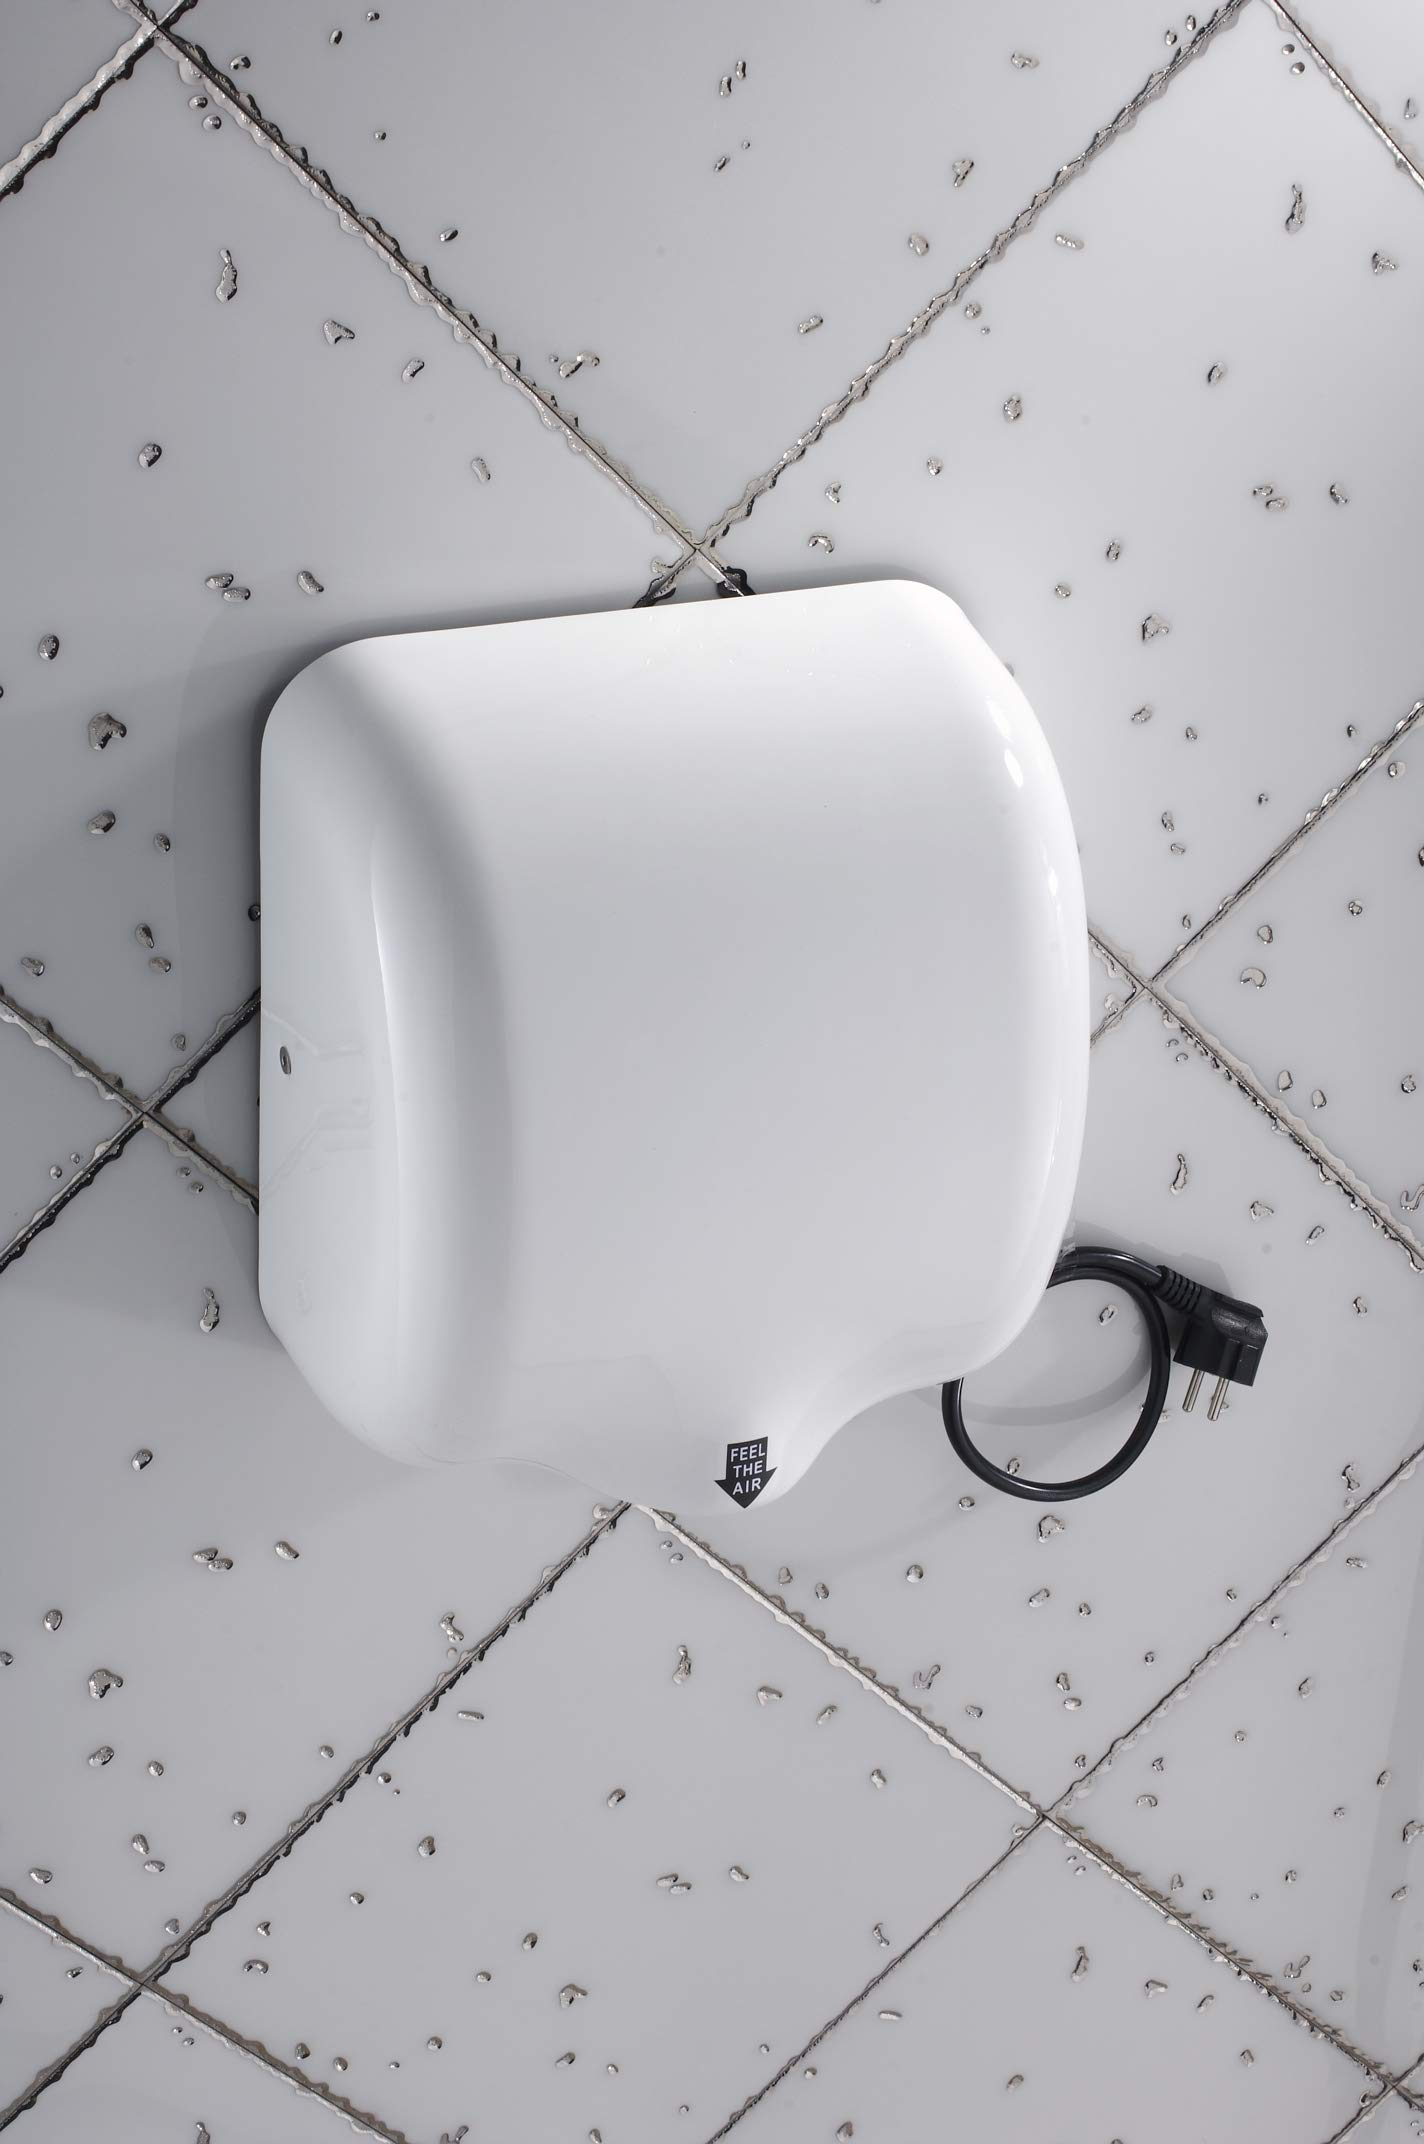 Mophorn 1800W Automatic Hand Dryer 110V Stainless Steel Commercial Hand Dryer Electric Hand Dryer for Hotel Home Bathrooms Air Hand Dryers White (White) by Mophorn (Image #4)